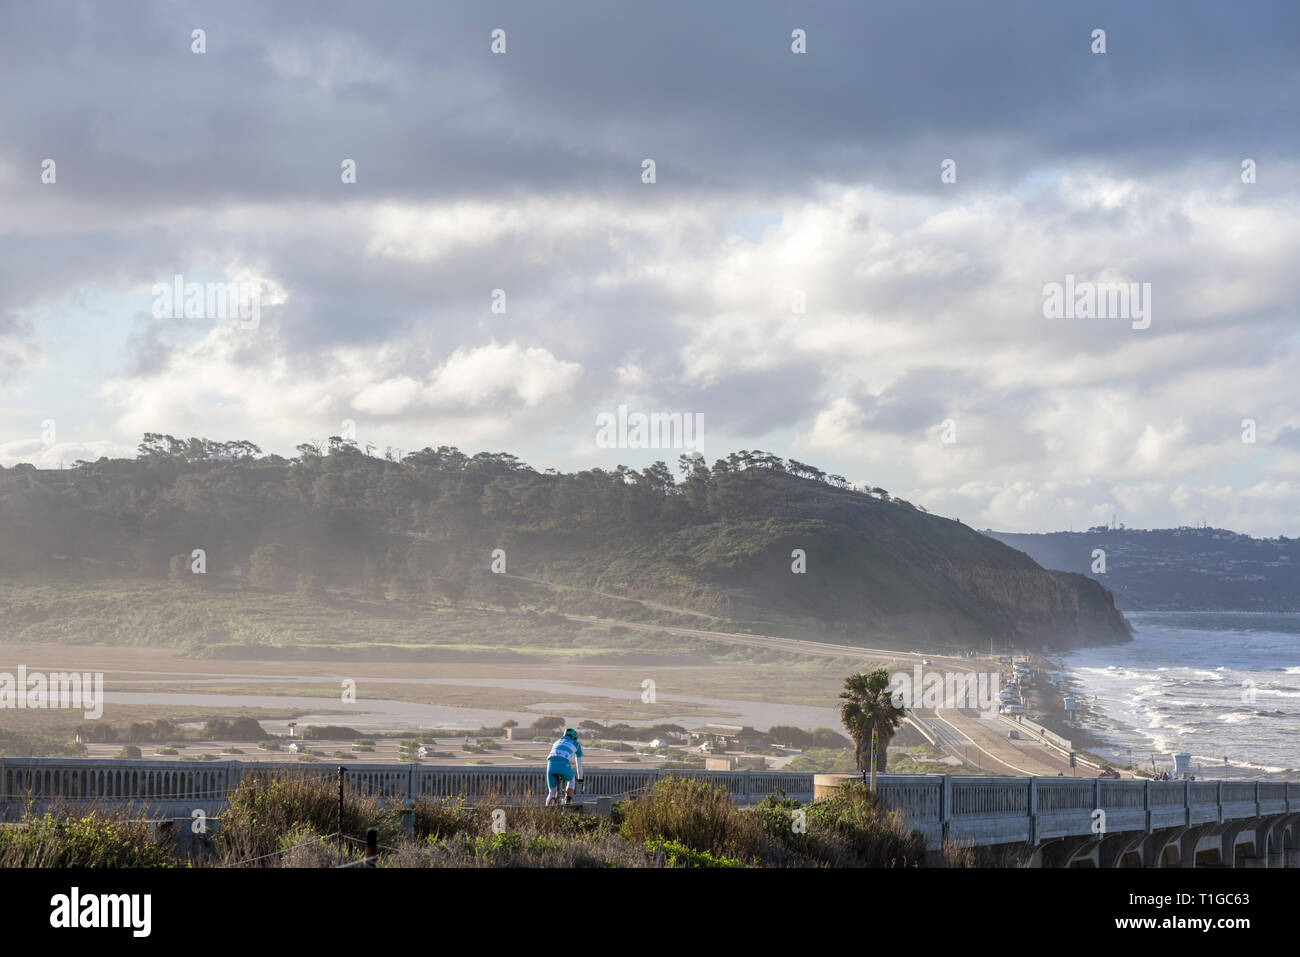 View of Torrey Pines State Beach and Torrey Pines State Natural Reserve. La Jolla, California, USA. - Stock Image